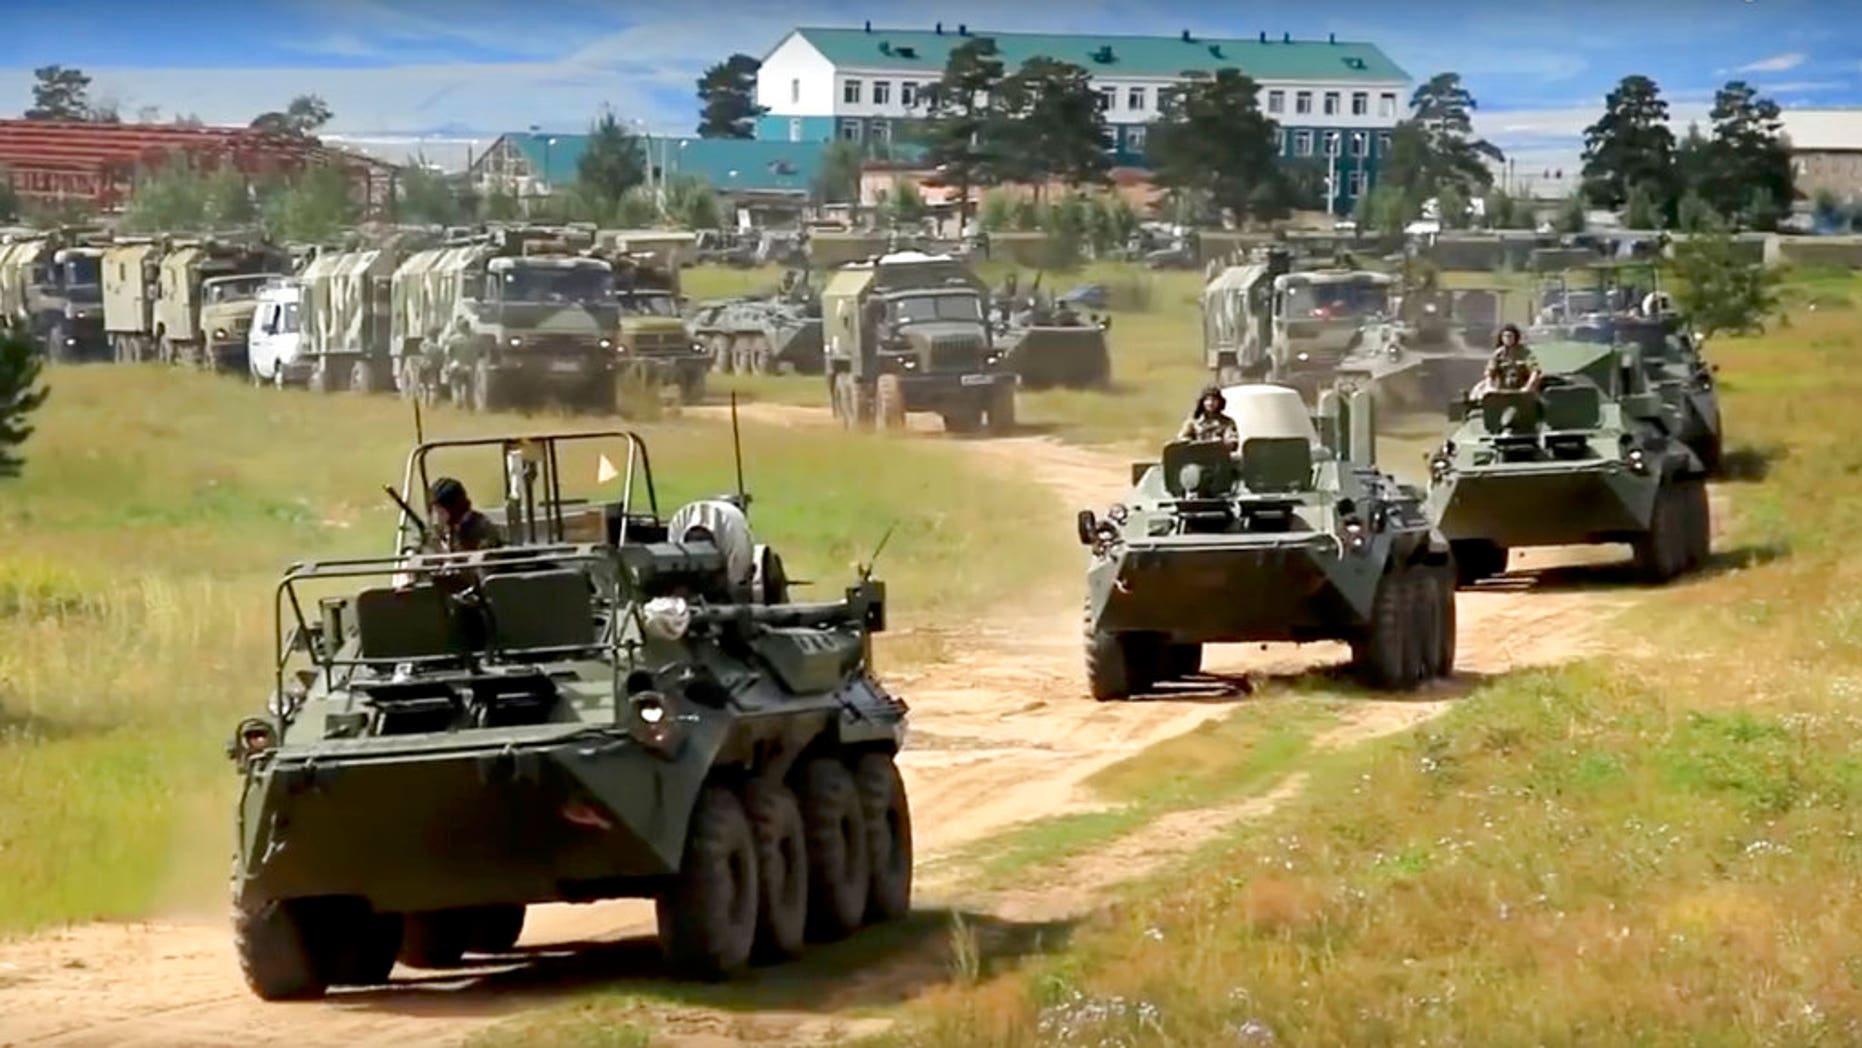 Russian armored personnel carriers roll during the military exercises in the Chita region, Eastern Siberia, during the Vostok 2018 exercises